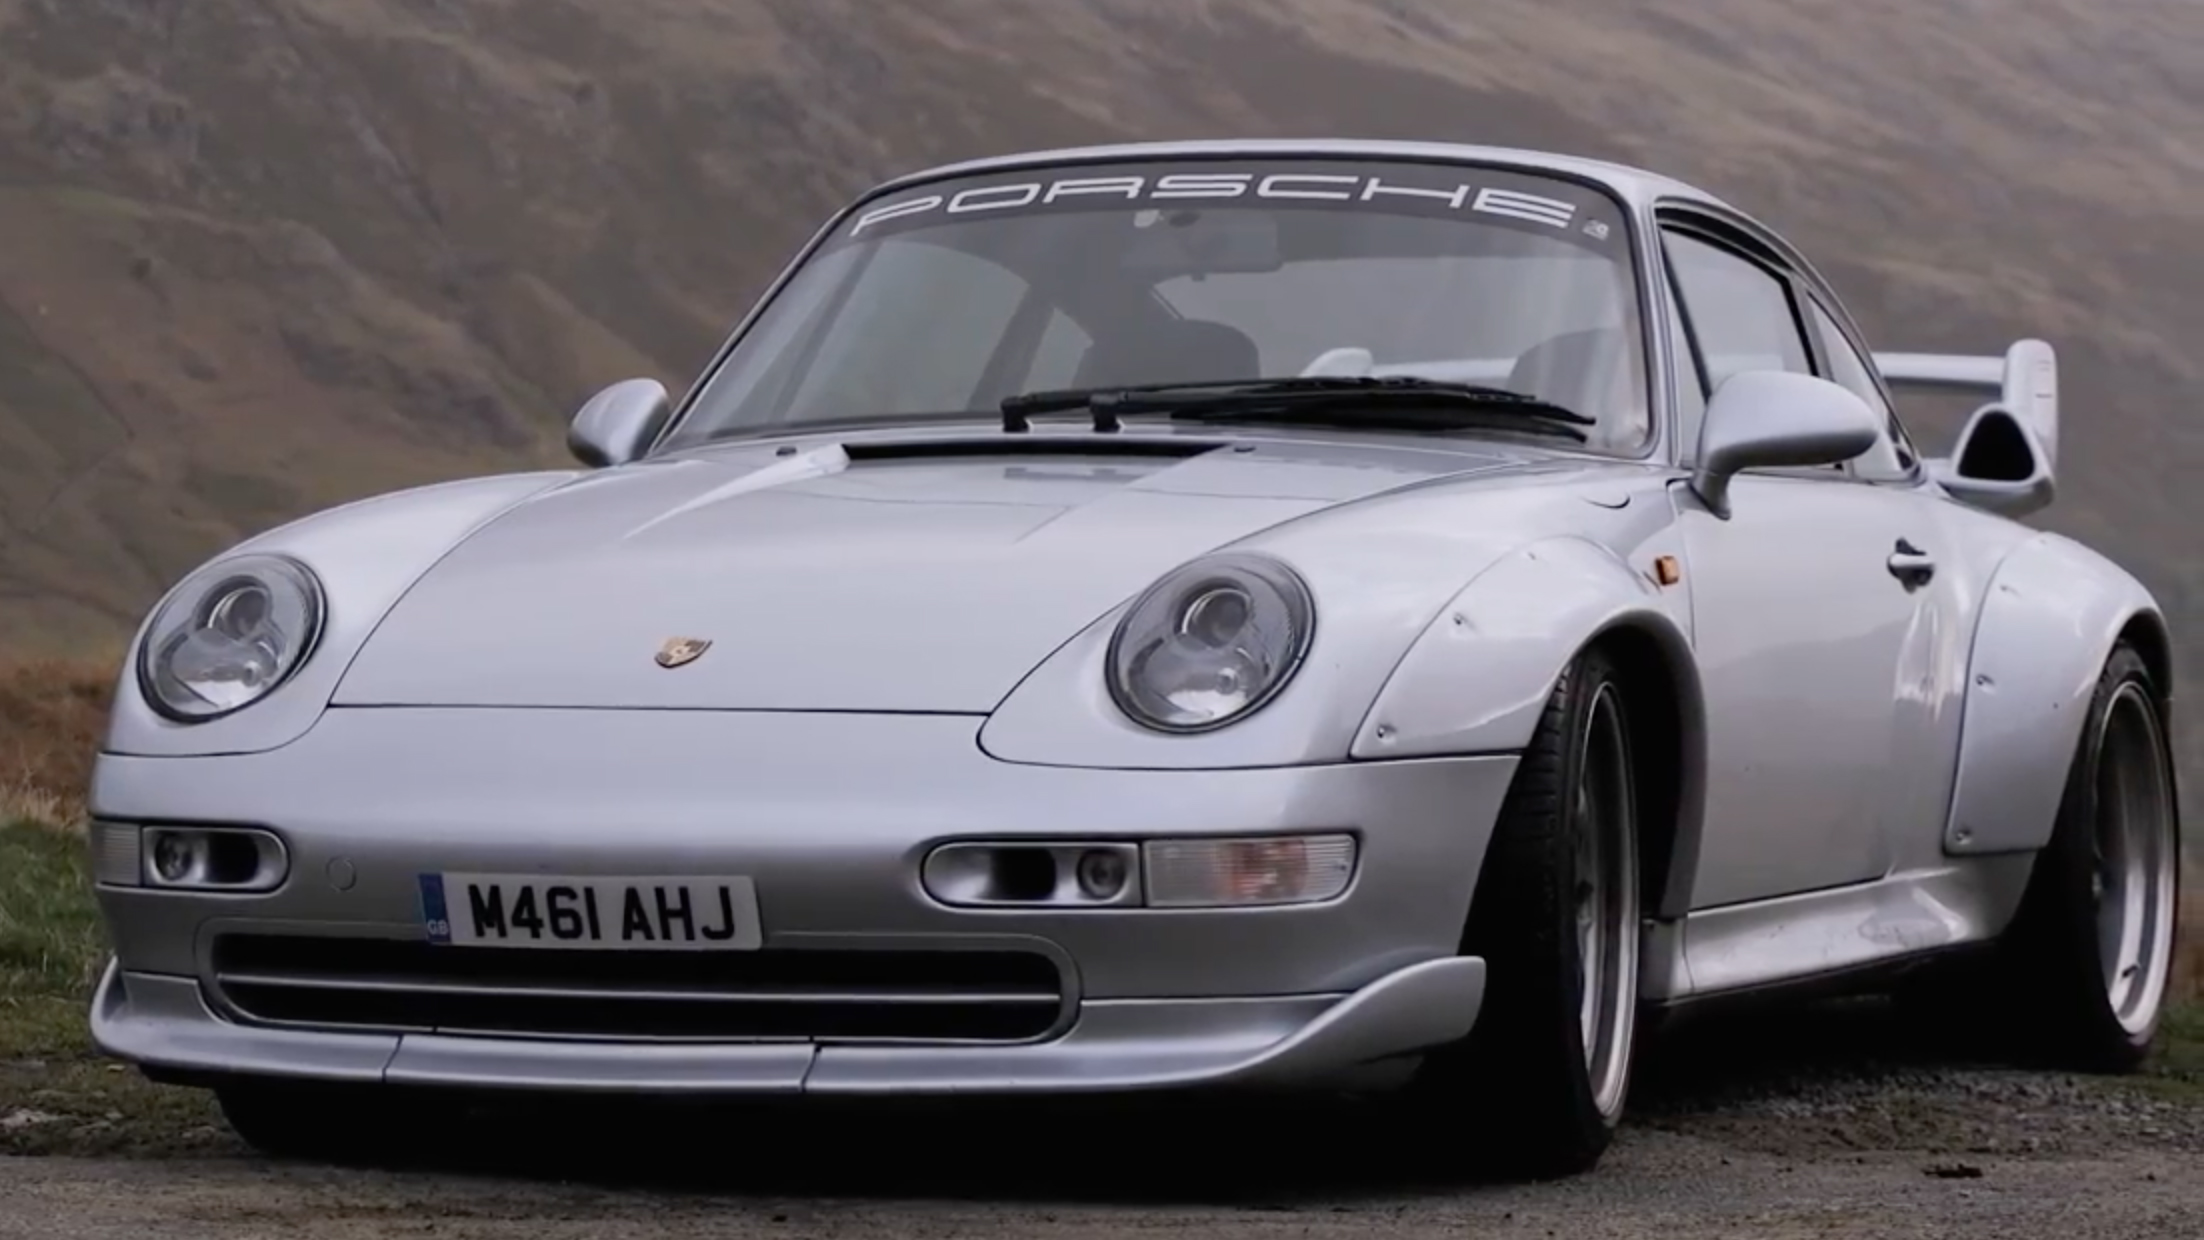 Video: The 993 GT2 is the best Porsche ever, says Charles Morgan